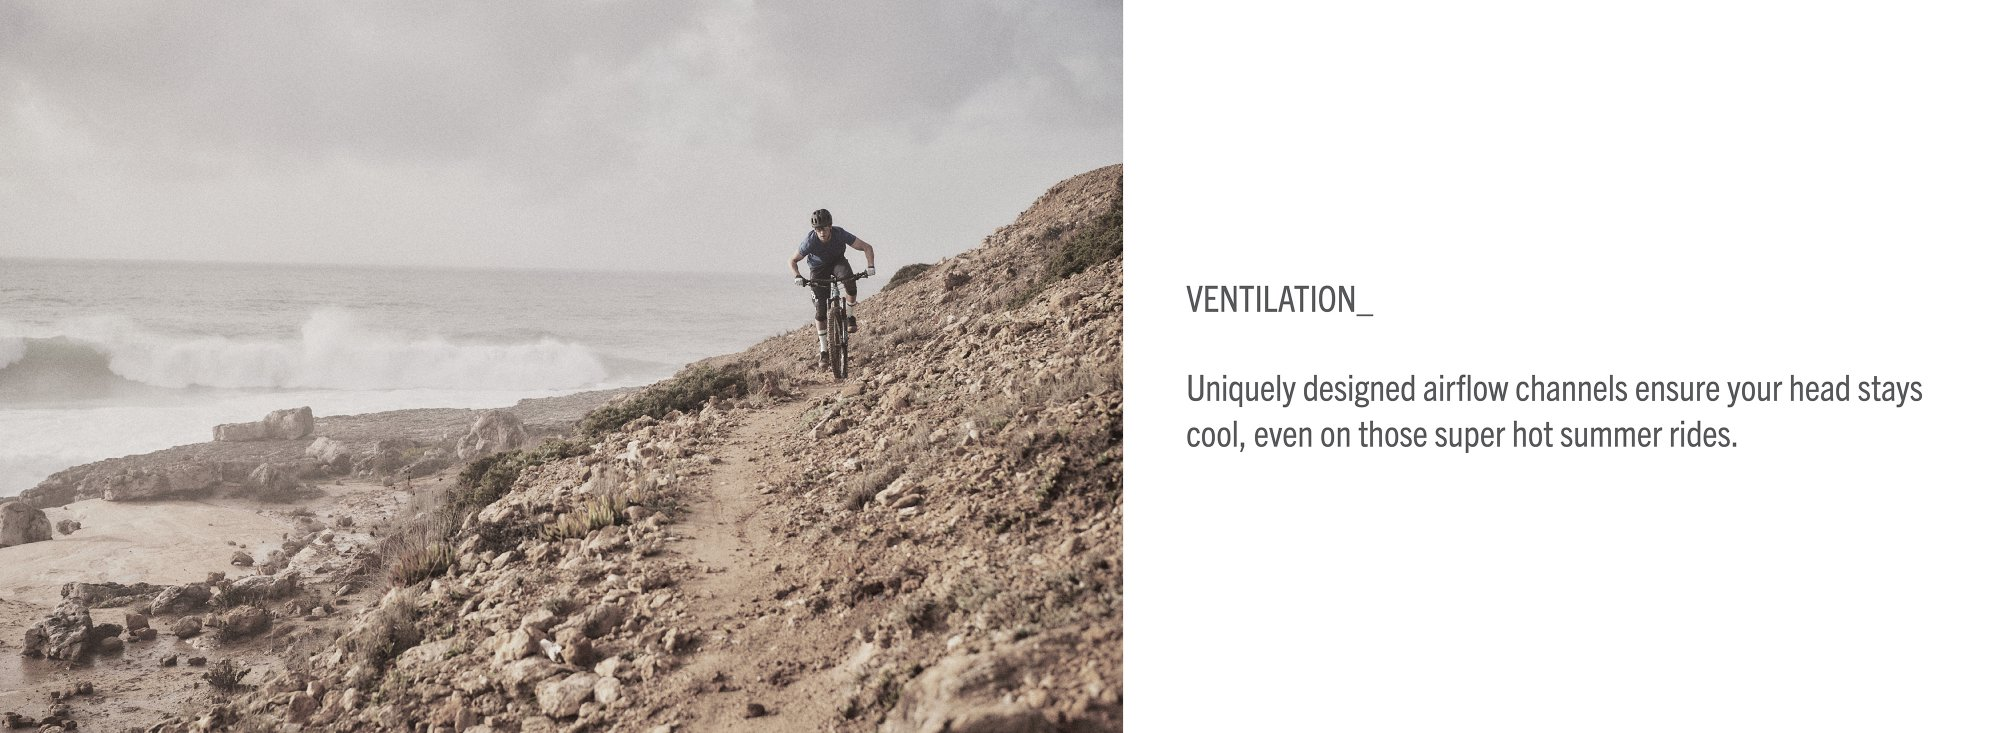 Axion - Ventilation